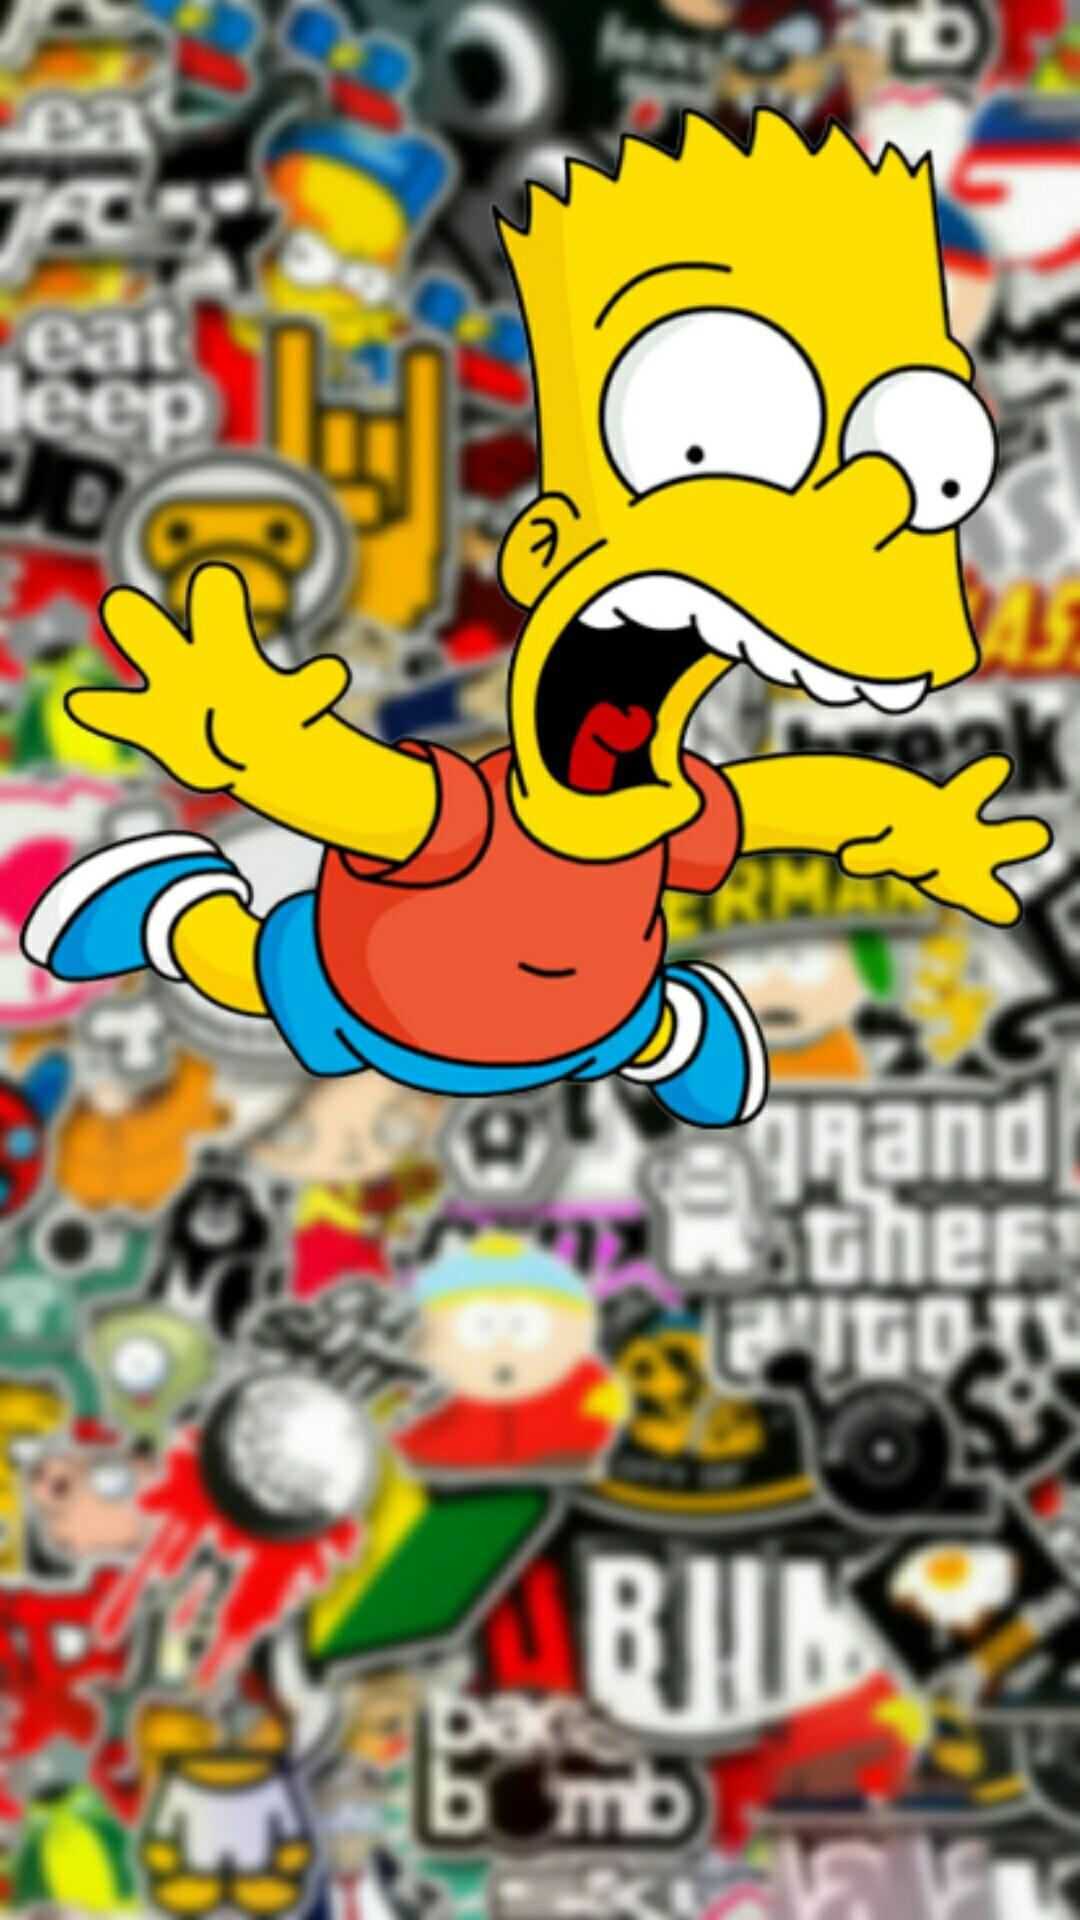 Supreme Bart Simpson Wallpapers Top Free Supreme Bart Epicgaming